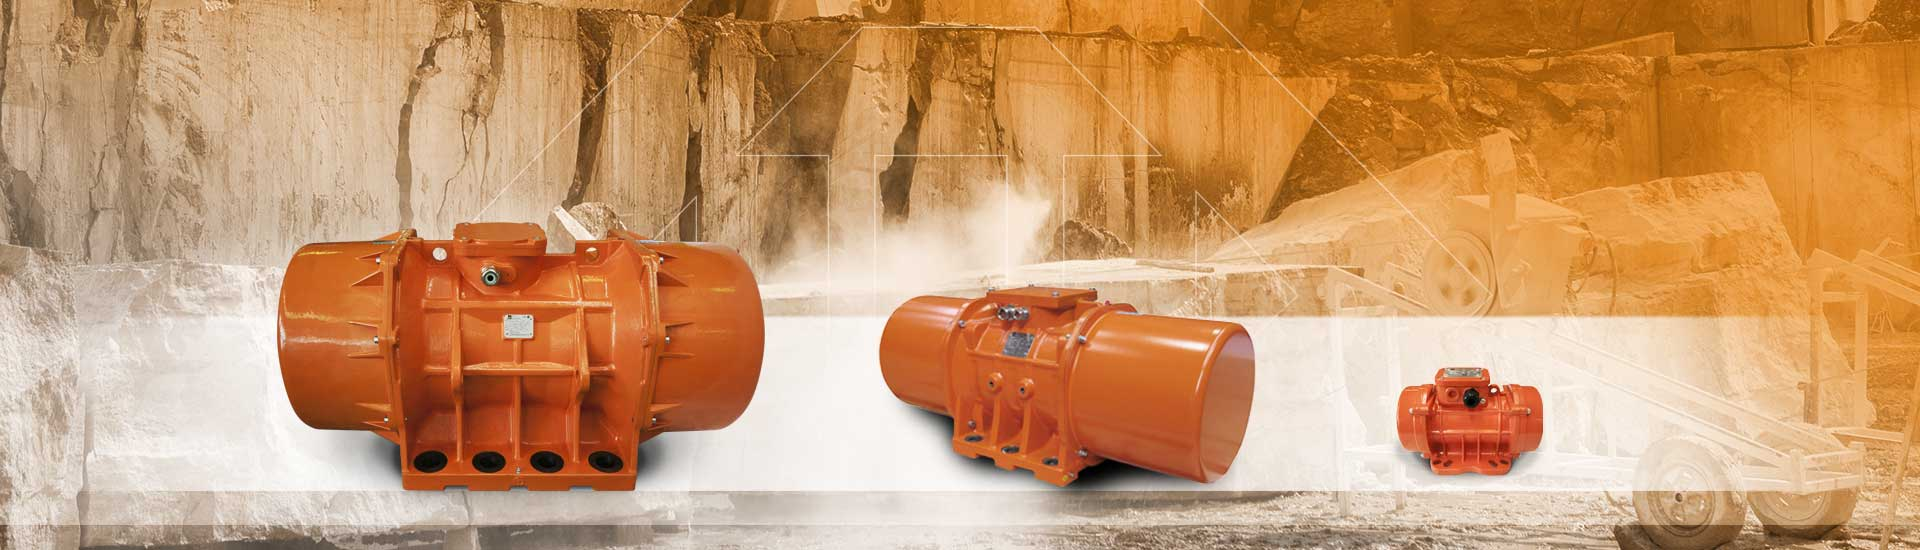 OLI Vibrators | The worldwide leader in vibration technology